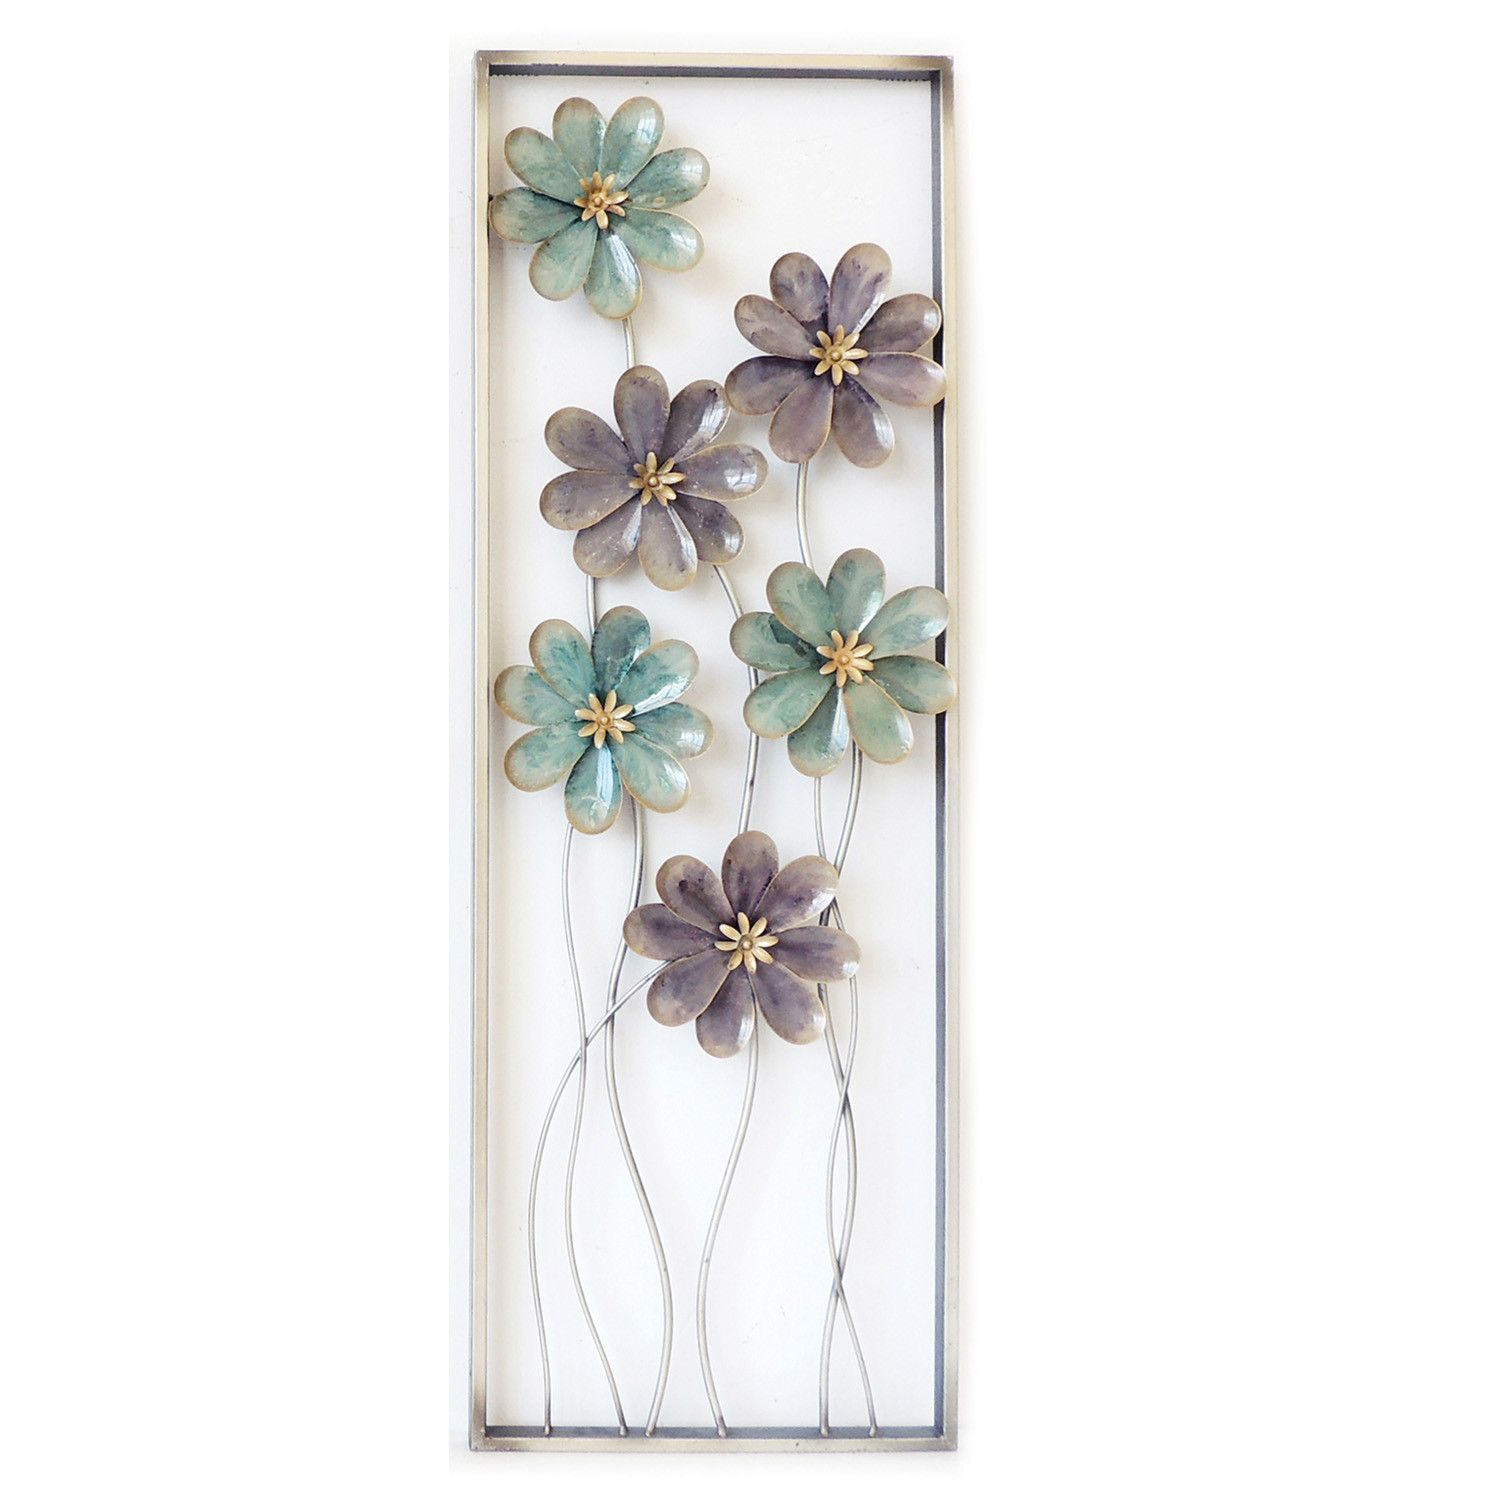 Charlton Home 6 Flowers On Stem Wall Decor | Ideas For The regarding Metal Wall Decor By Charlton Home (Image 6 of 30)